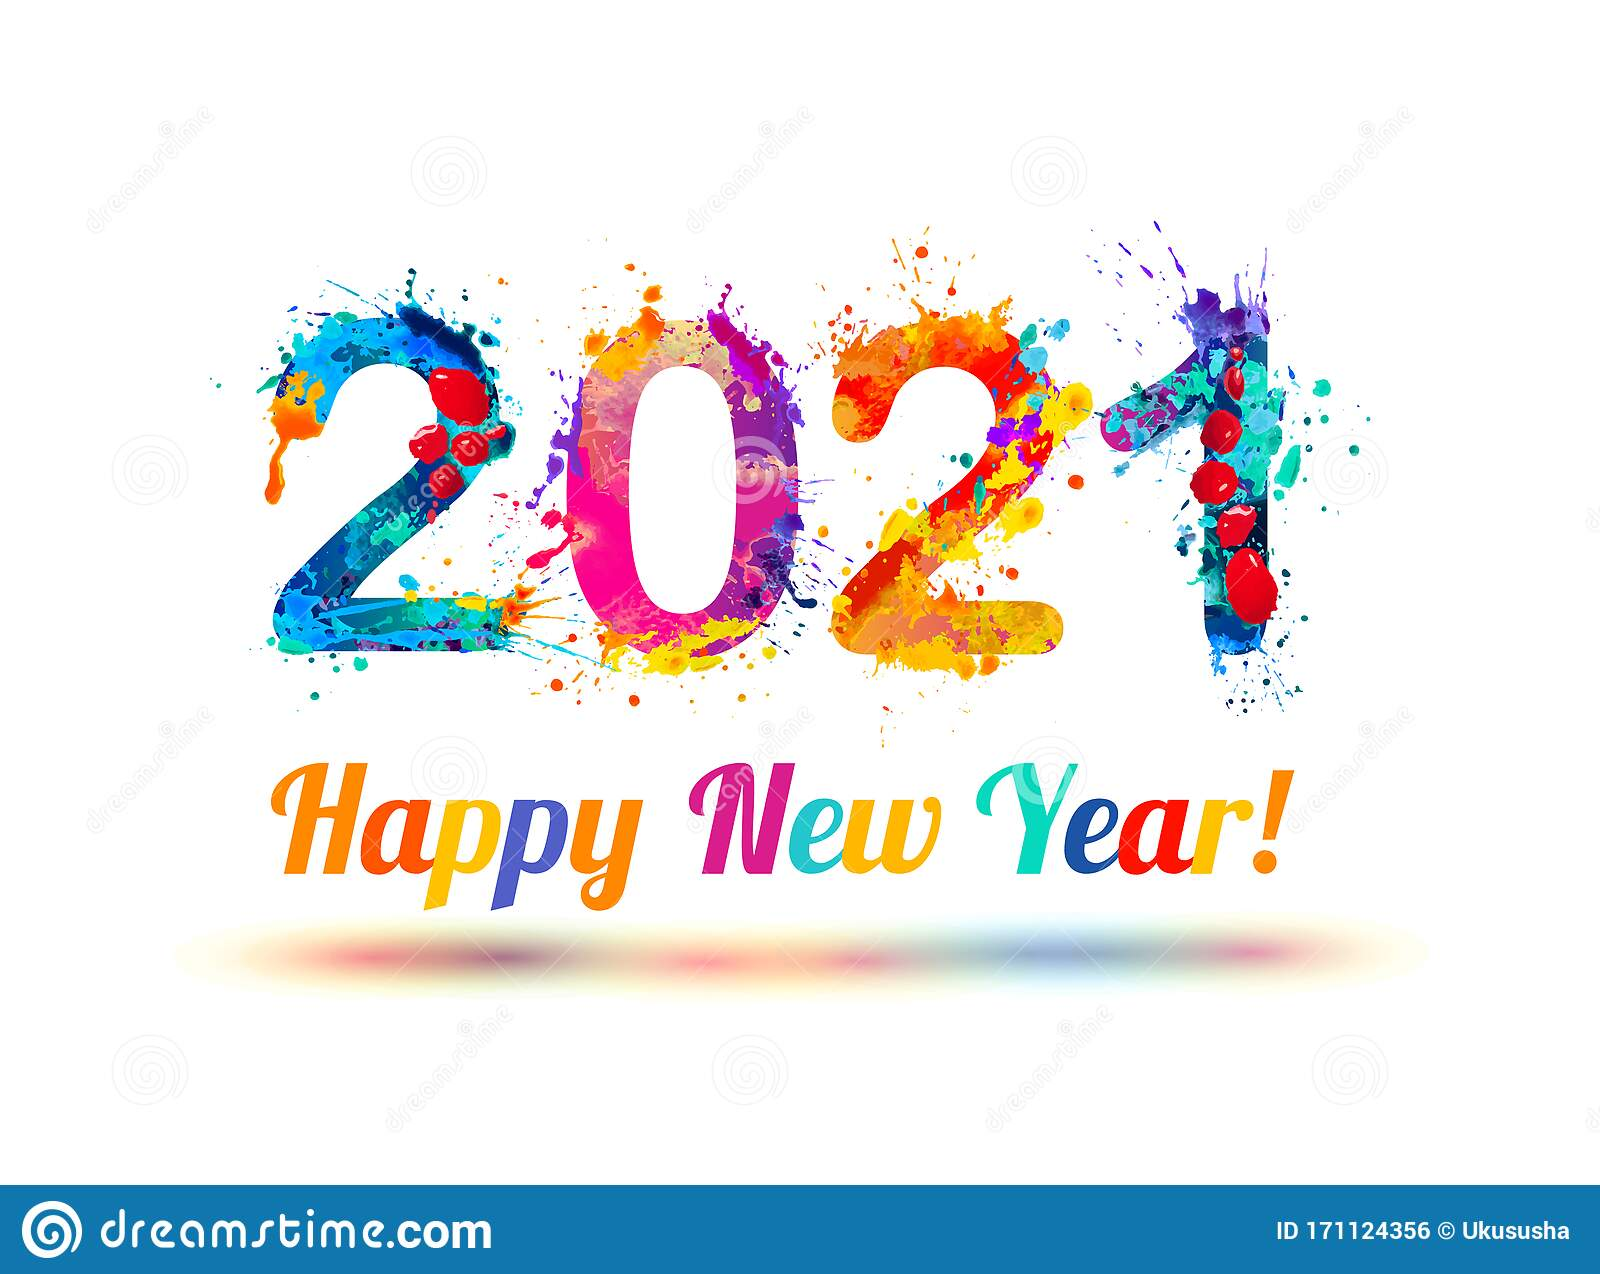 Congratulation Card. Happy New Year 2021 Stock Vector - Illustration of  vector, element: 171124356